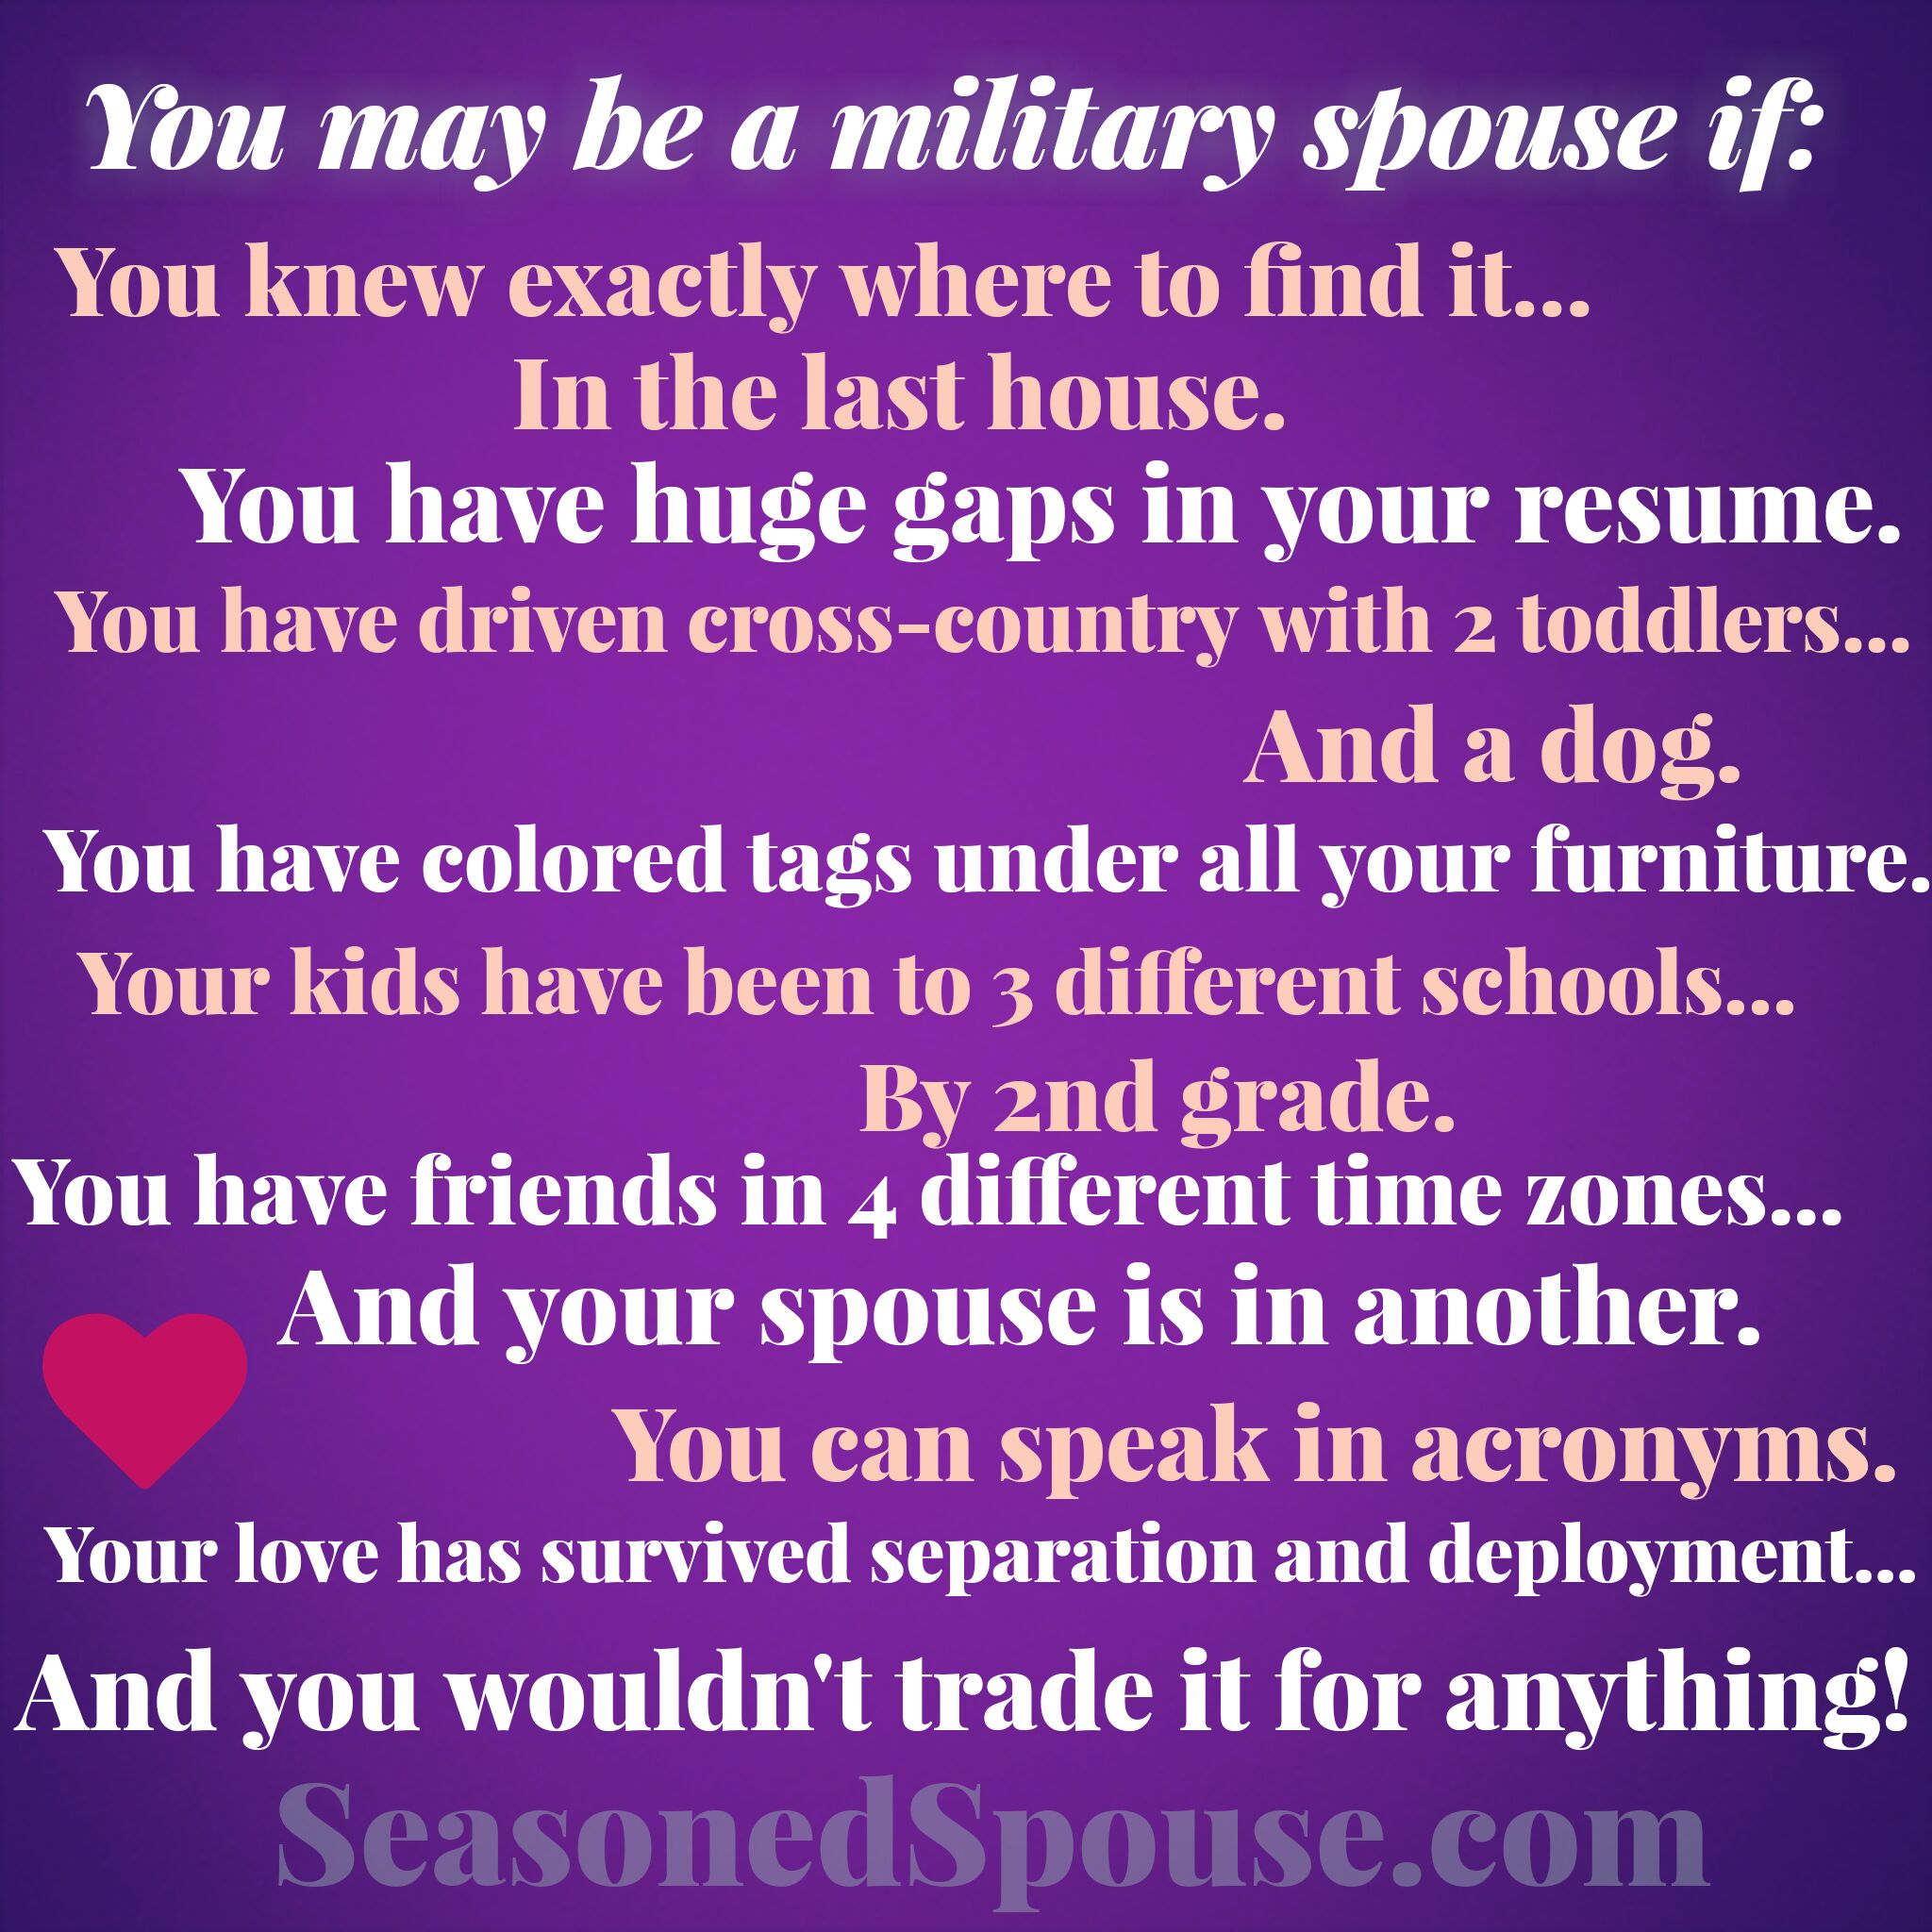 Have you gone through a cross-country move? Have the kids changed schools more than once? Do you track different time zones? Then you might be a military spouse! Share these other fun anecdotes about the life we love. #milspouse